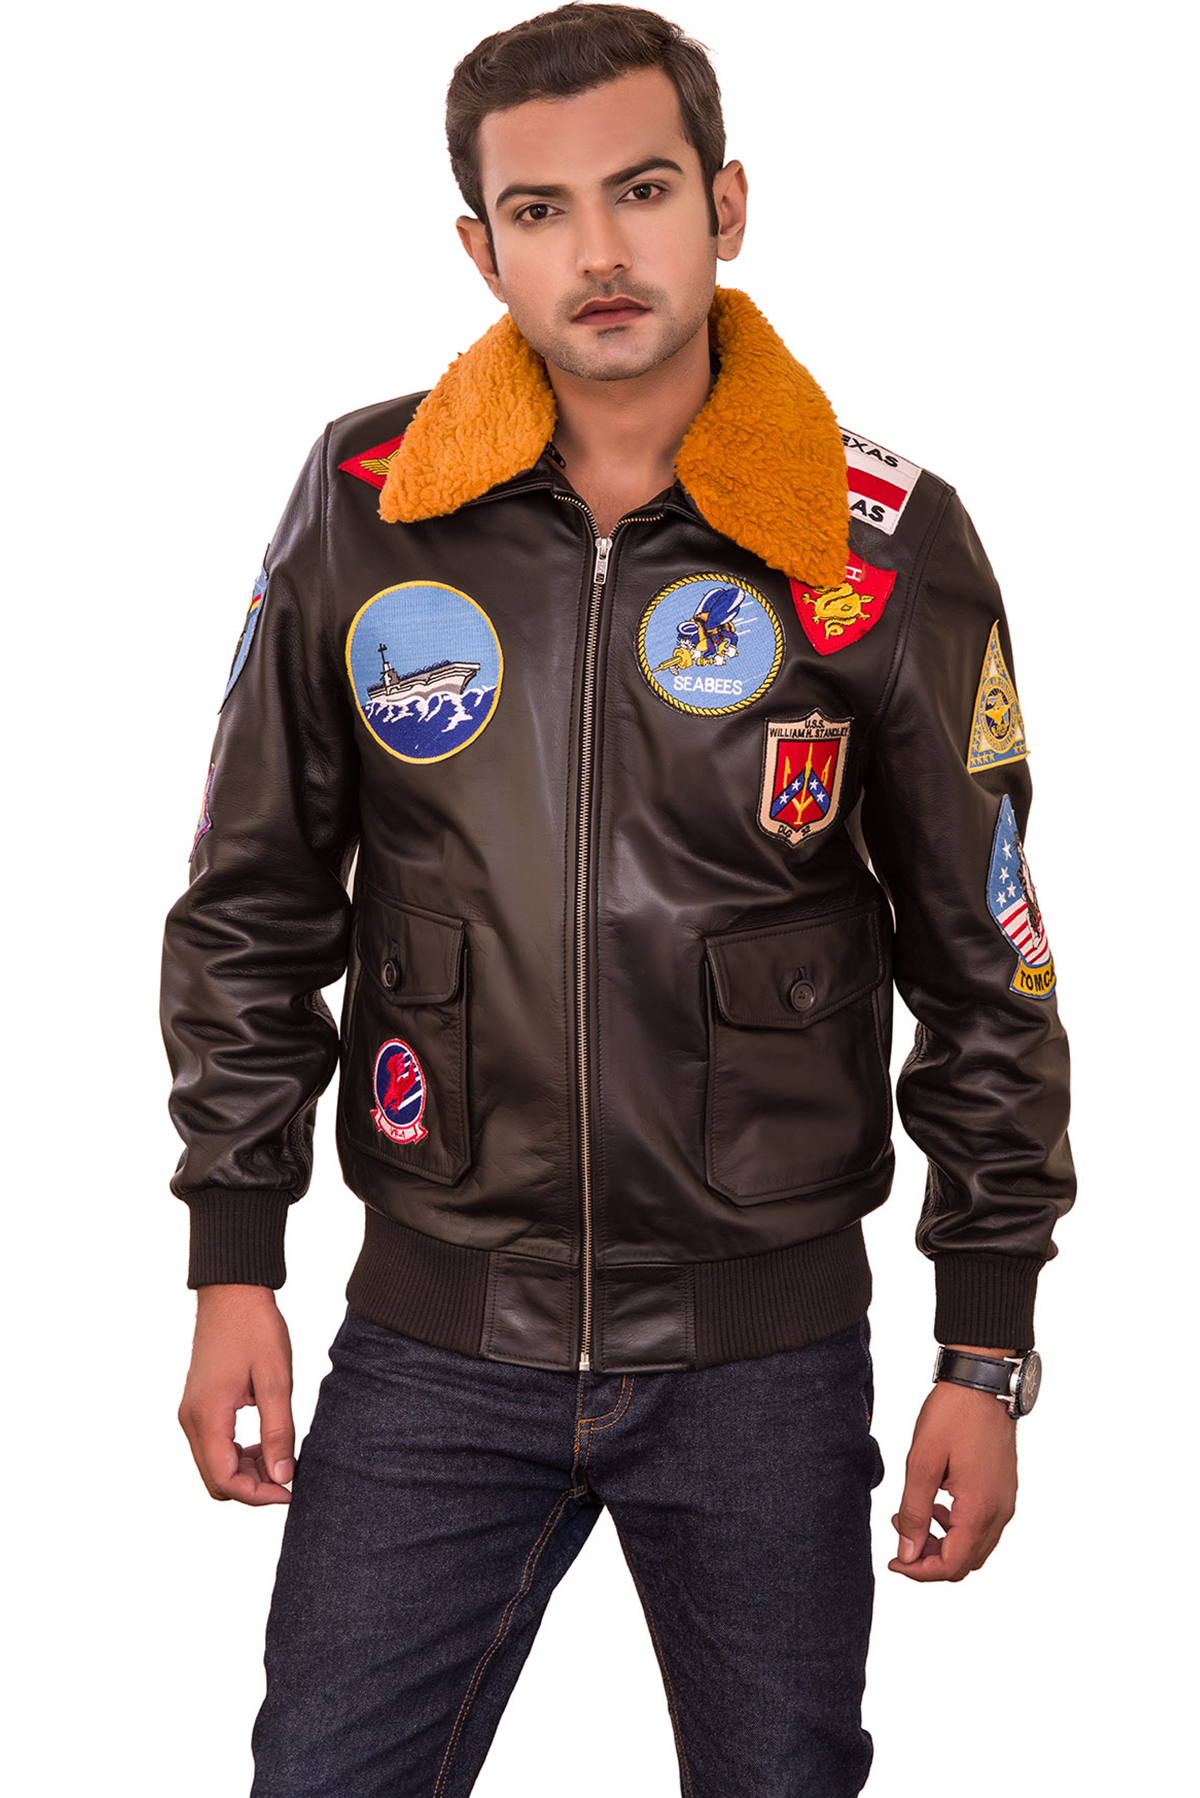 leather jacket mens stores near me